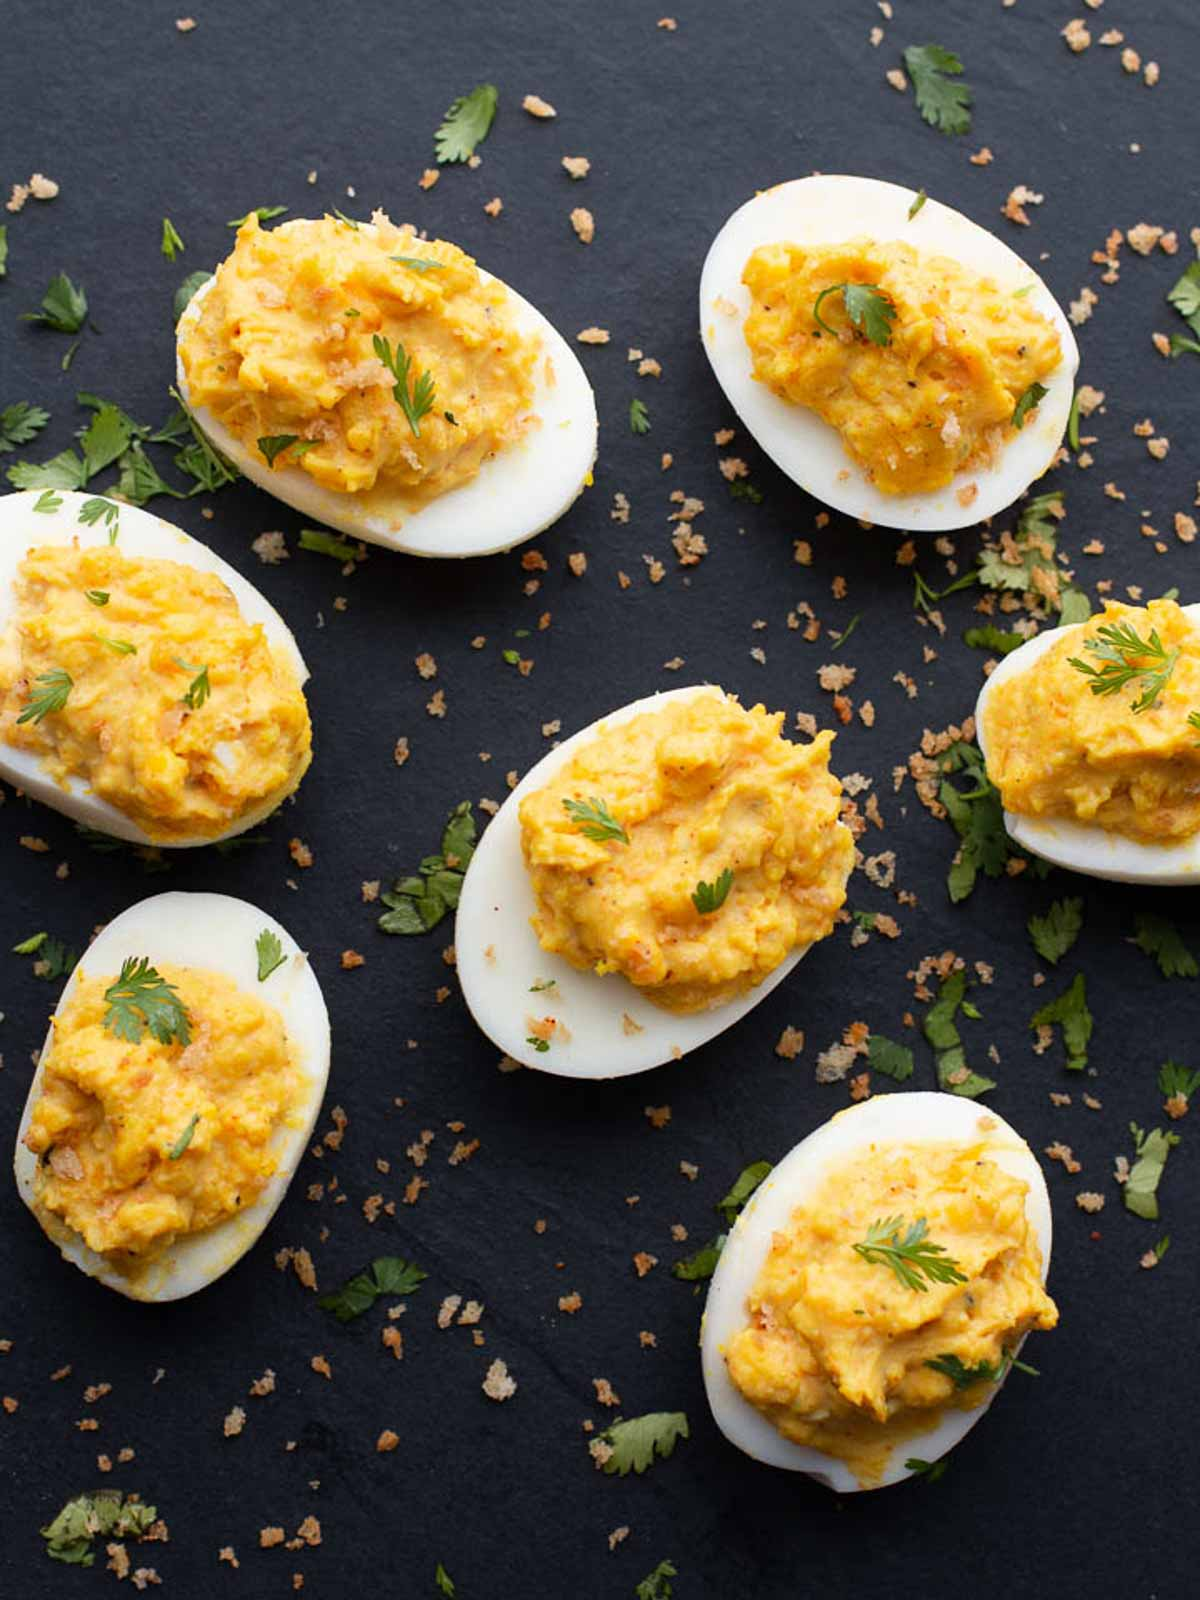 Spicy deviled eggs topped with cilantro and spicy panko bread crumbs